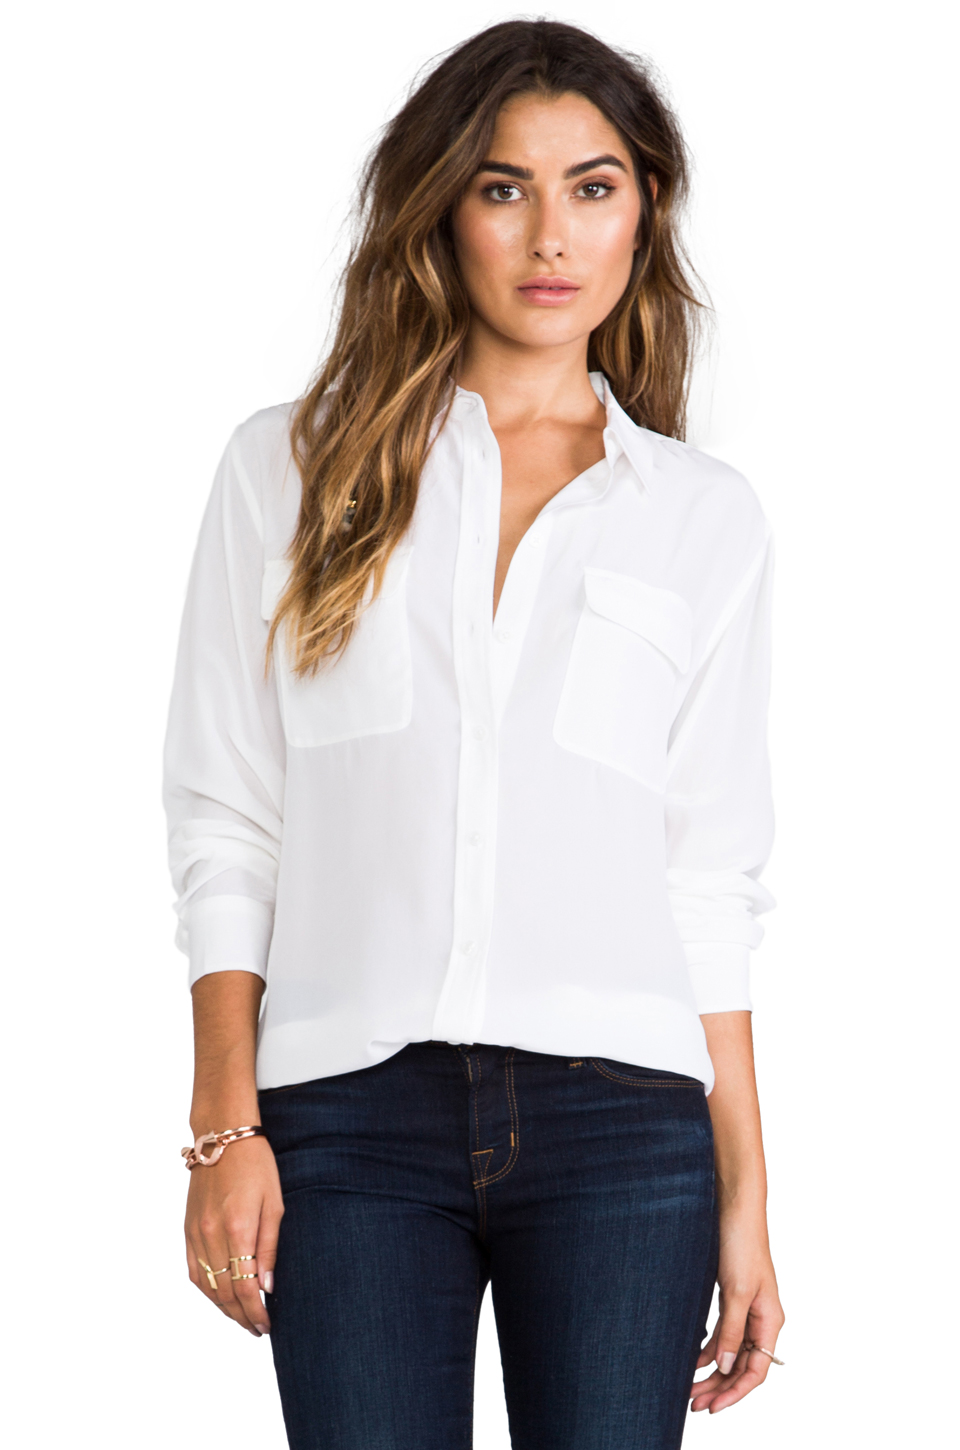 Equipment Signature Blouse in Bright White from REVOLVEclothing.com